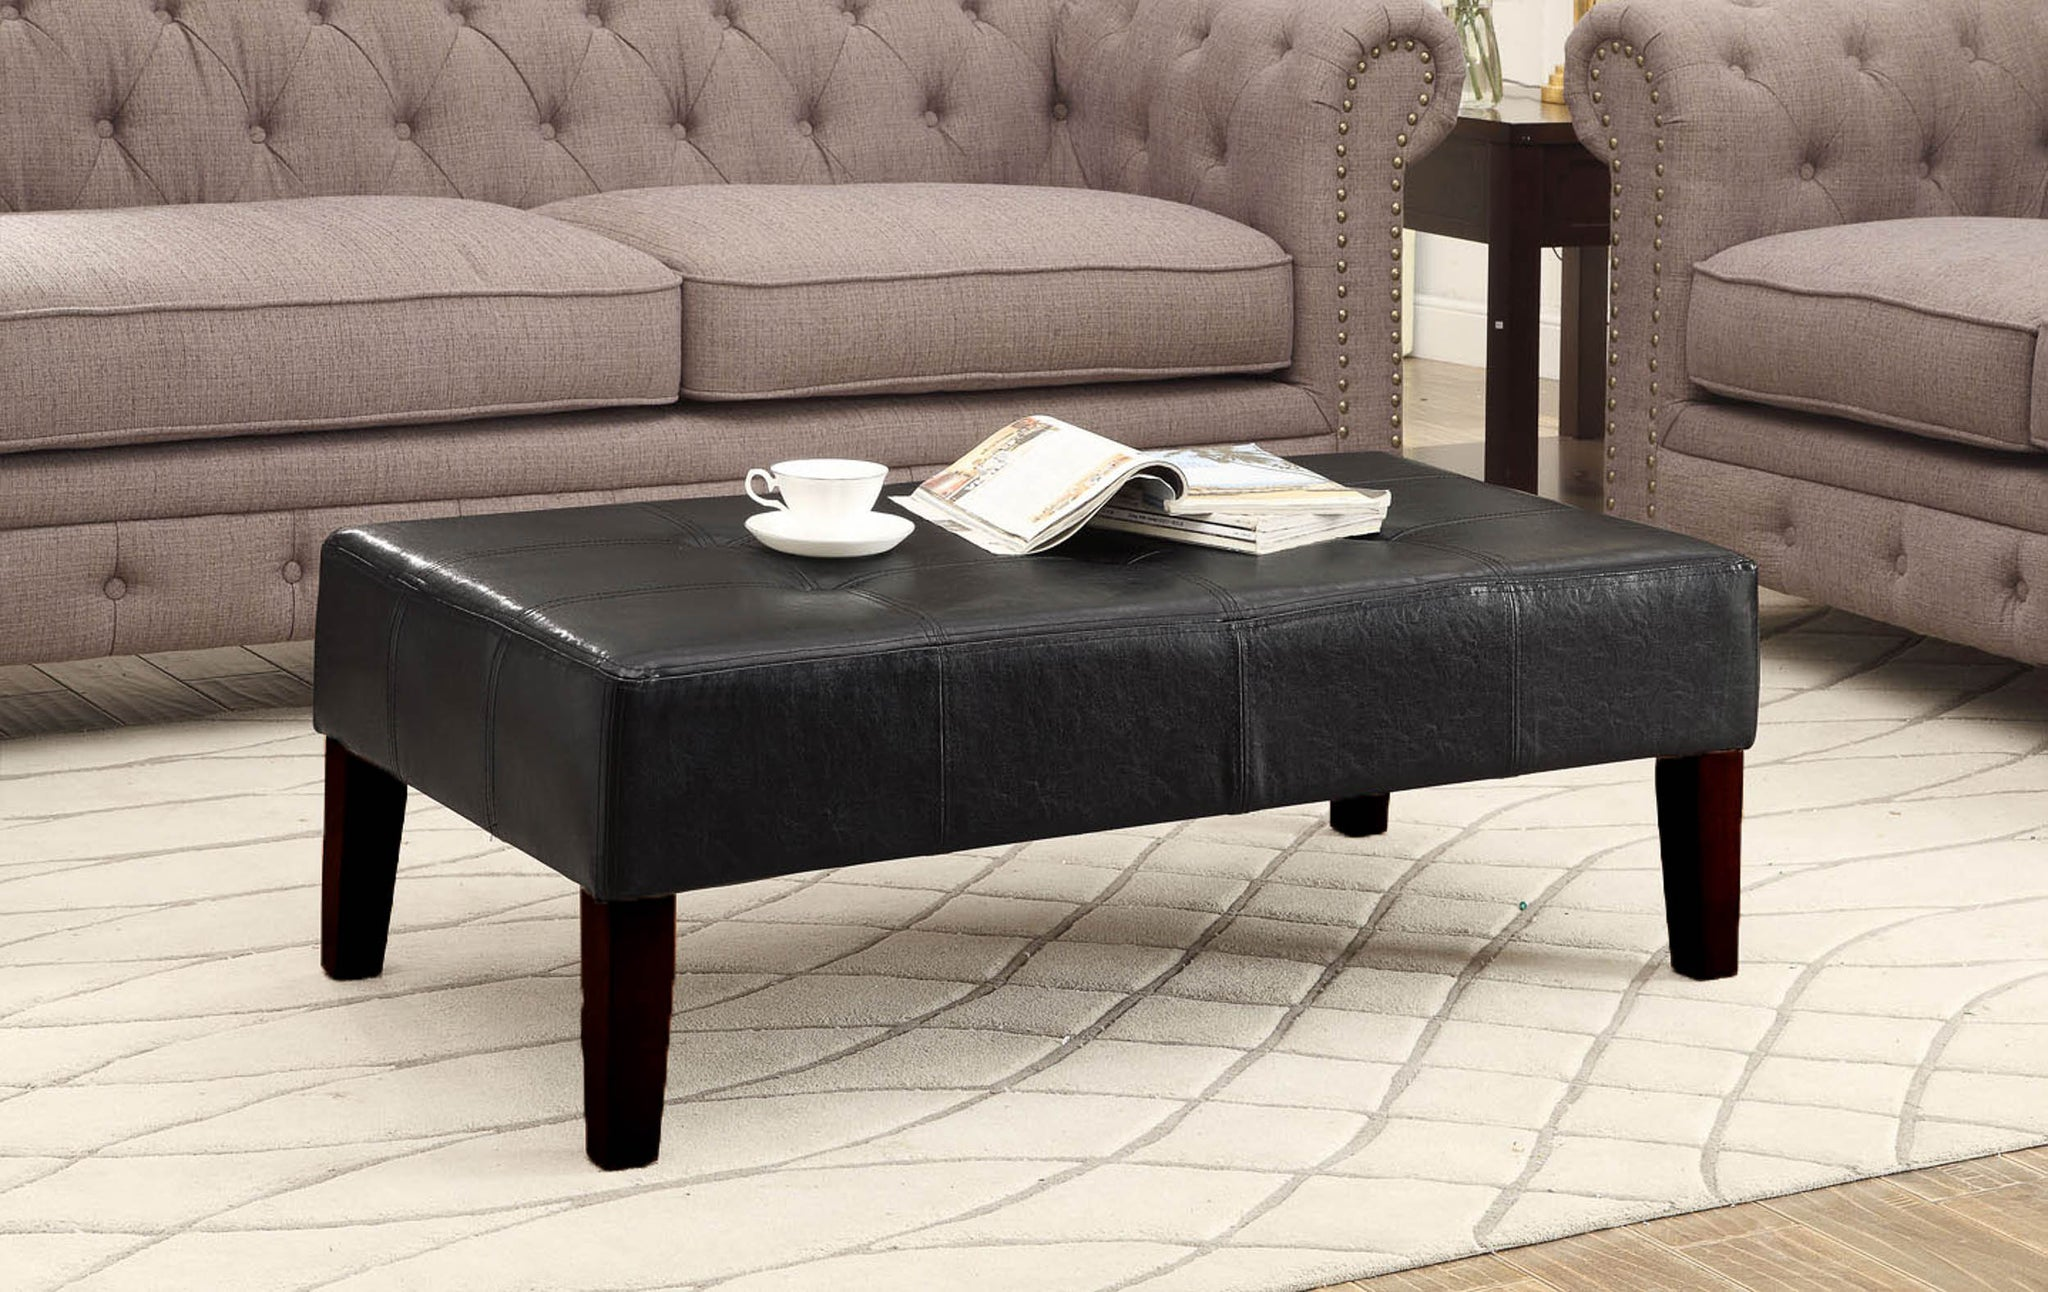 bench tufted soft bedroom black brown rectangular table upholstered living cocktail long leather gray coffee square fabric real round storage seat sofa ottoman room